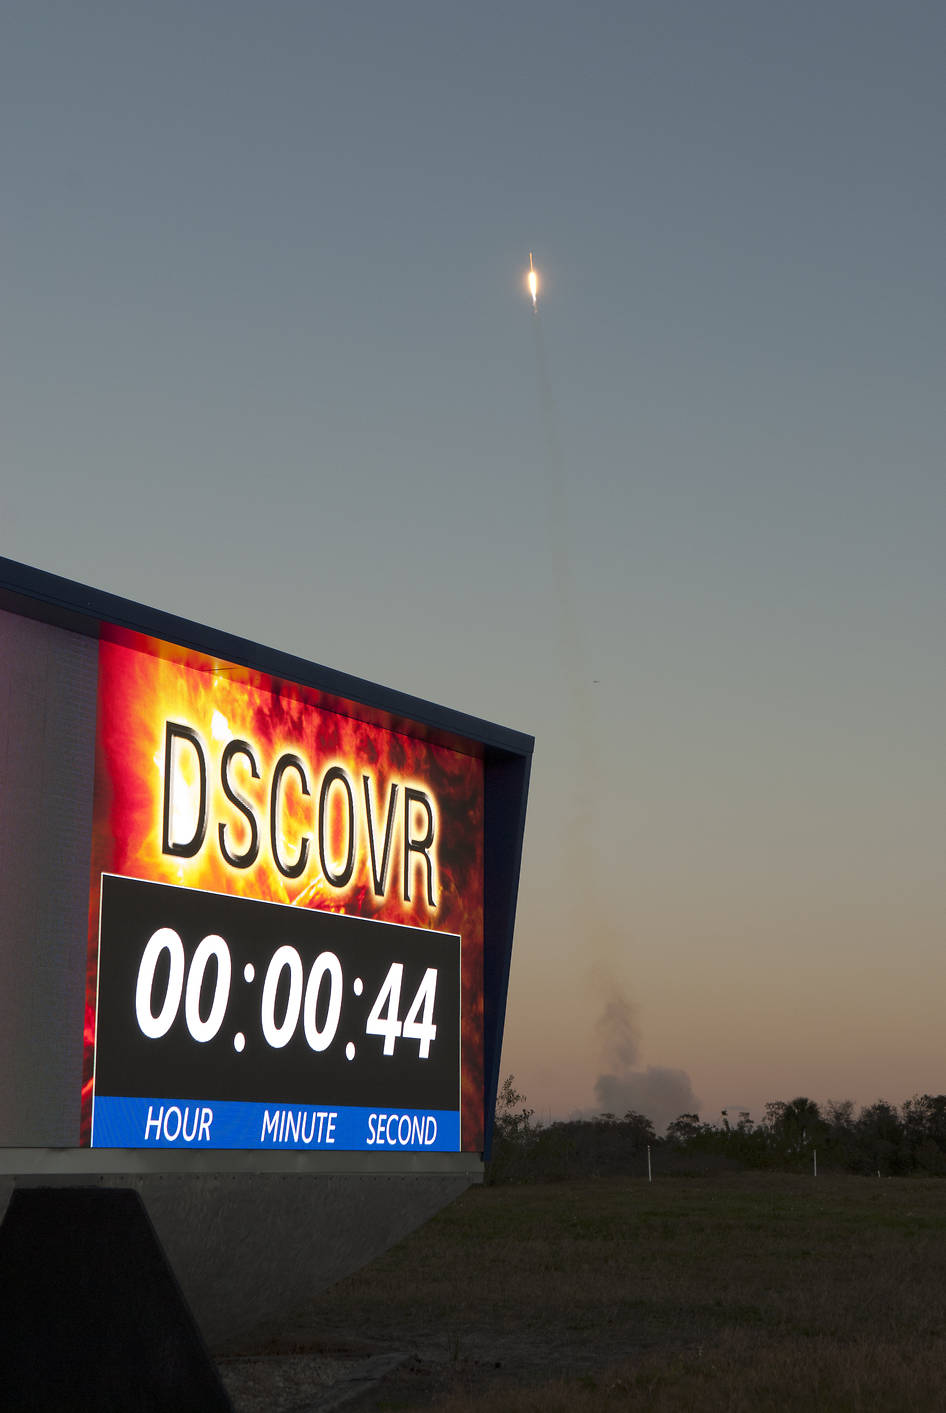 Lancement Falcon-9 / DSCOVR - 11.02.2015 - Page 15 Dscovr_launch_0